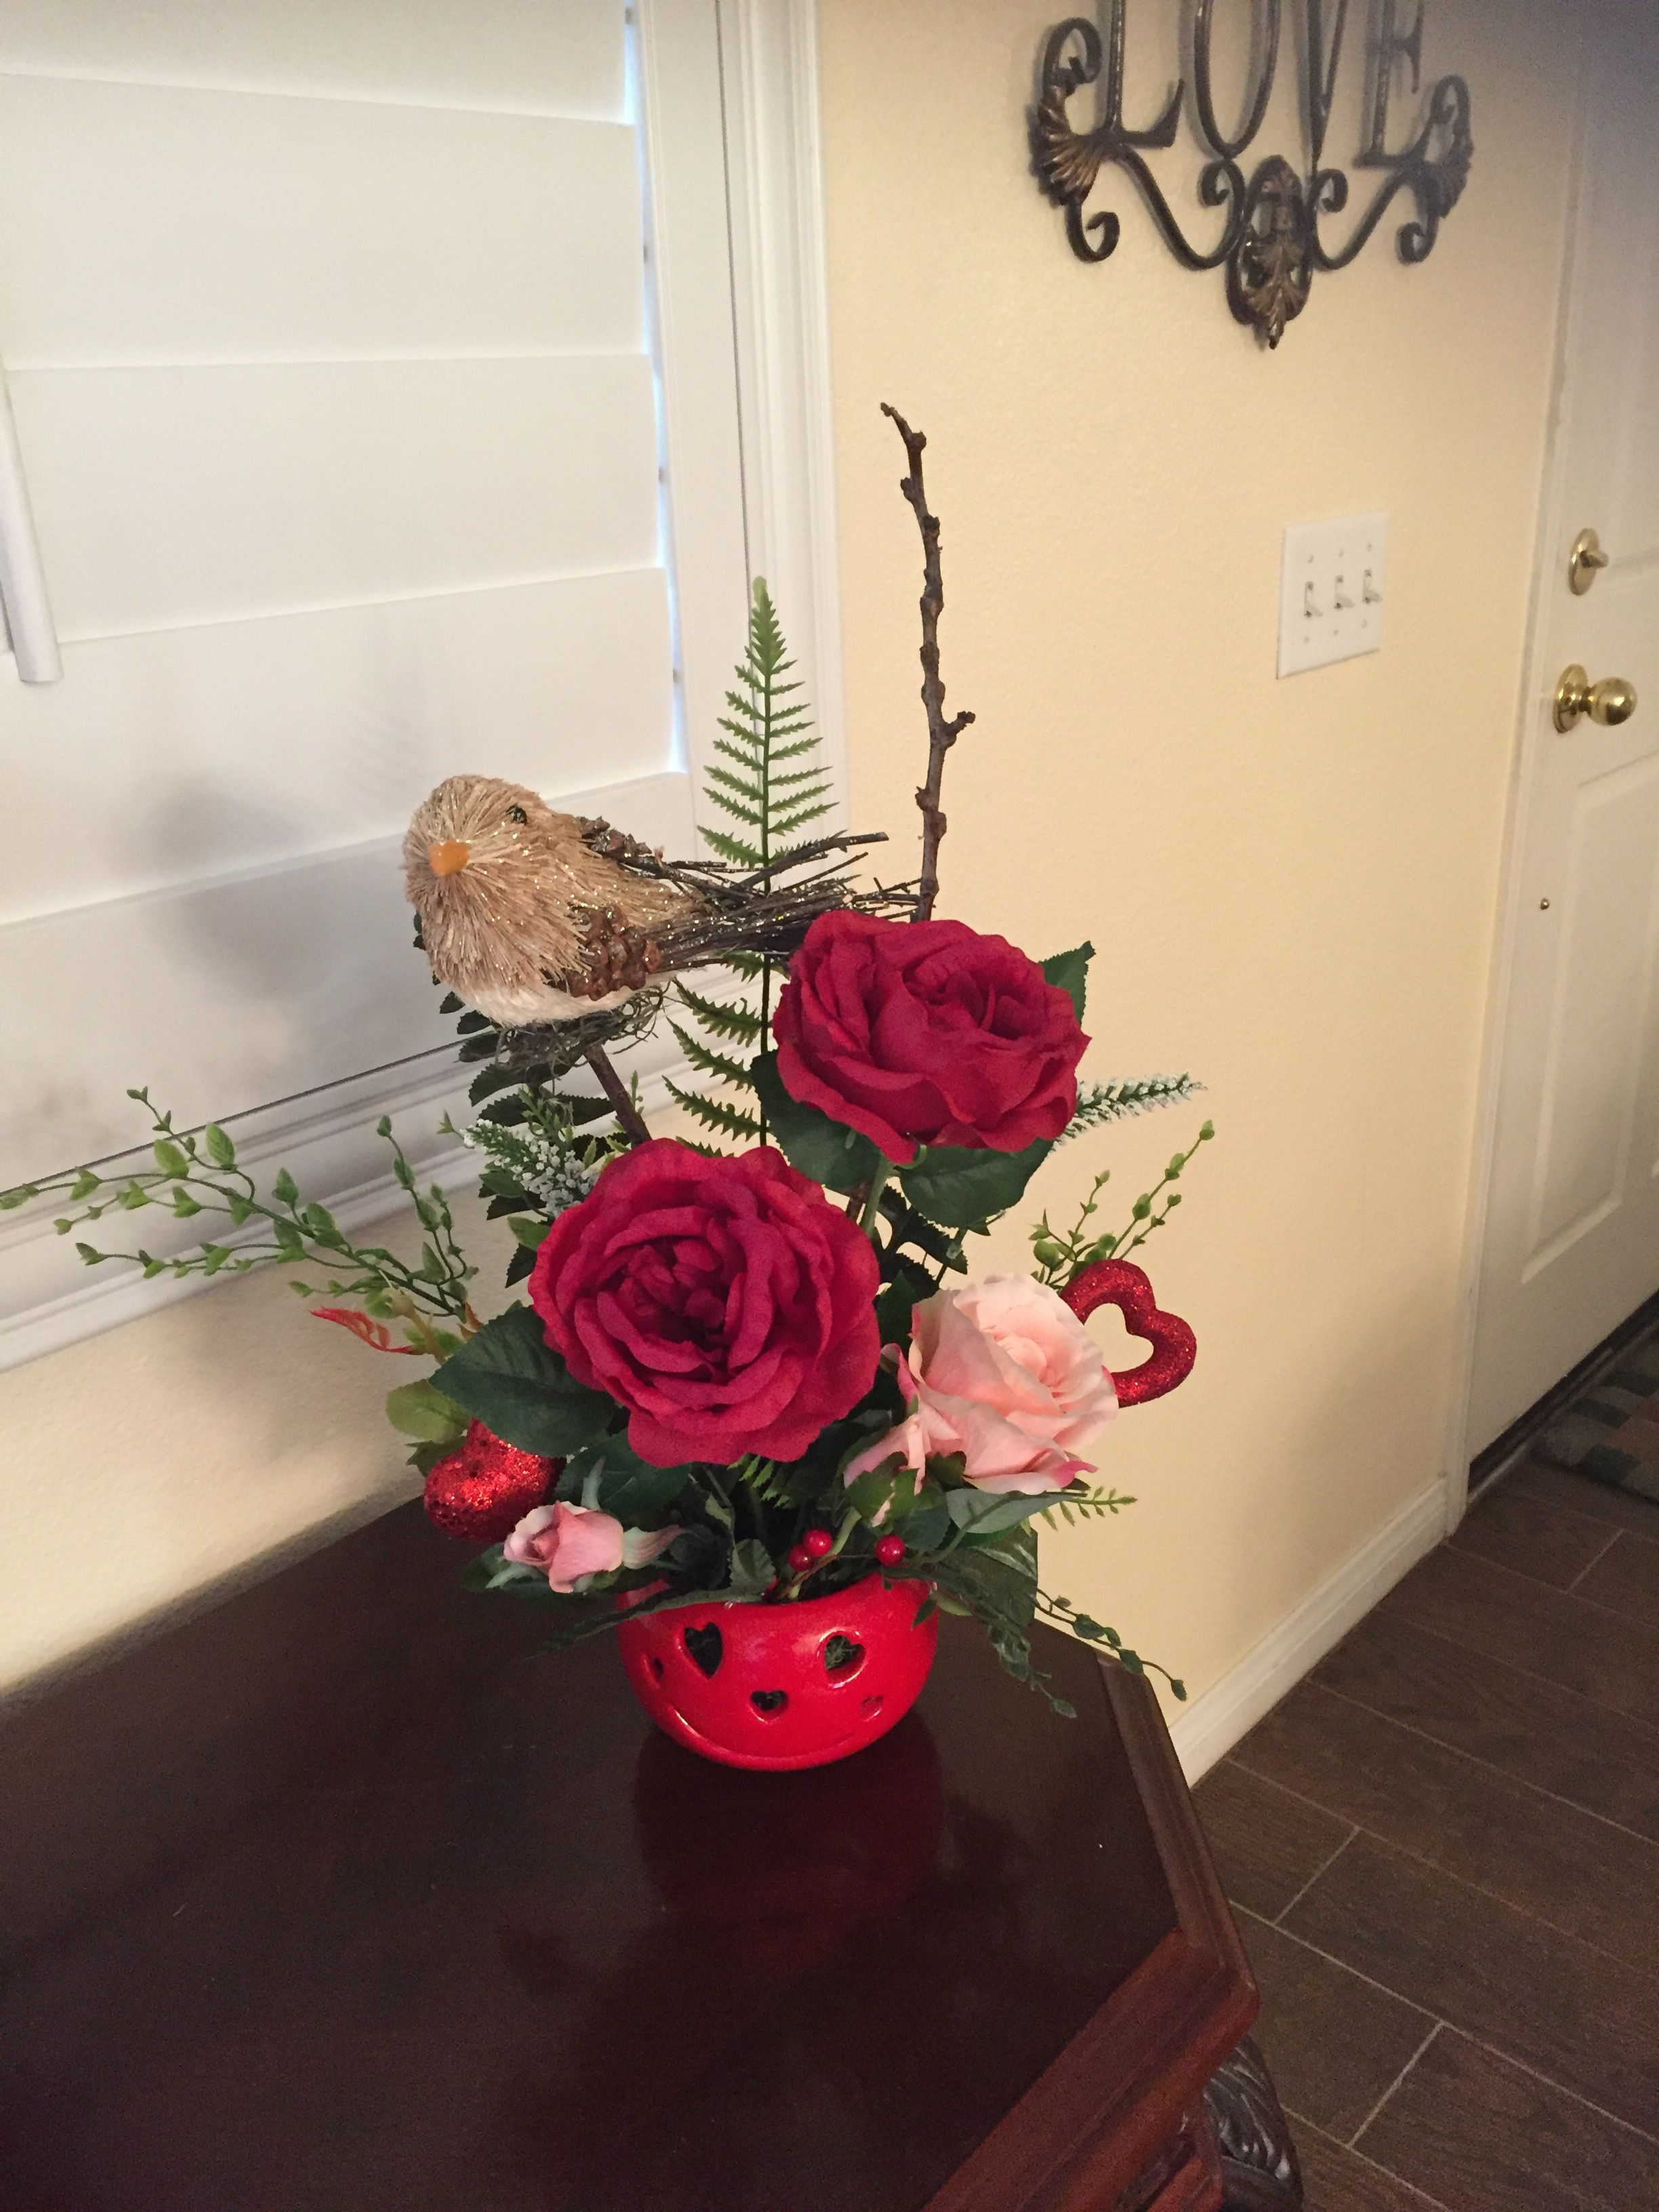 Smiley face arrangement with red and pink beautiful roses and a cute smiley face arrangement with red and pink beautiful roses and a cute bird 2000 izmirmasajfo